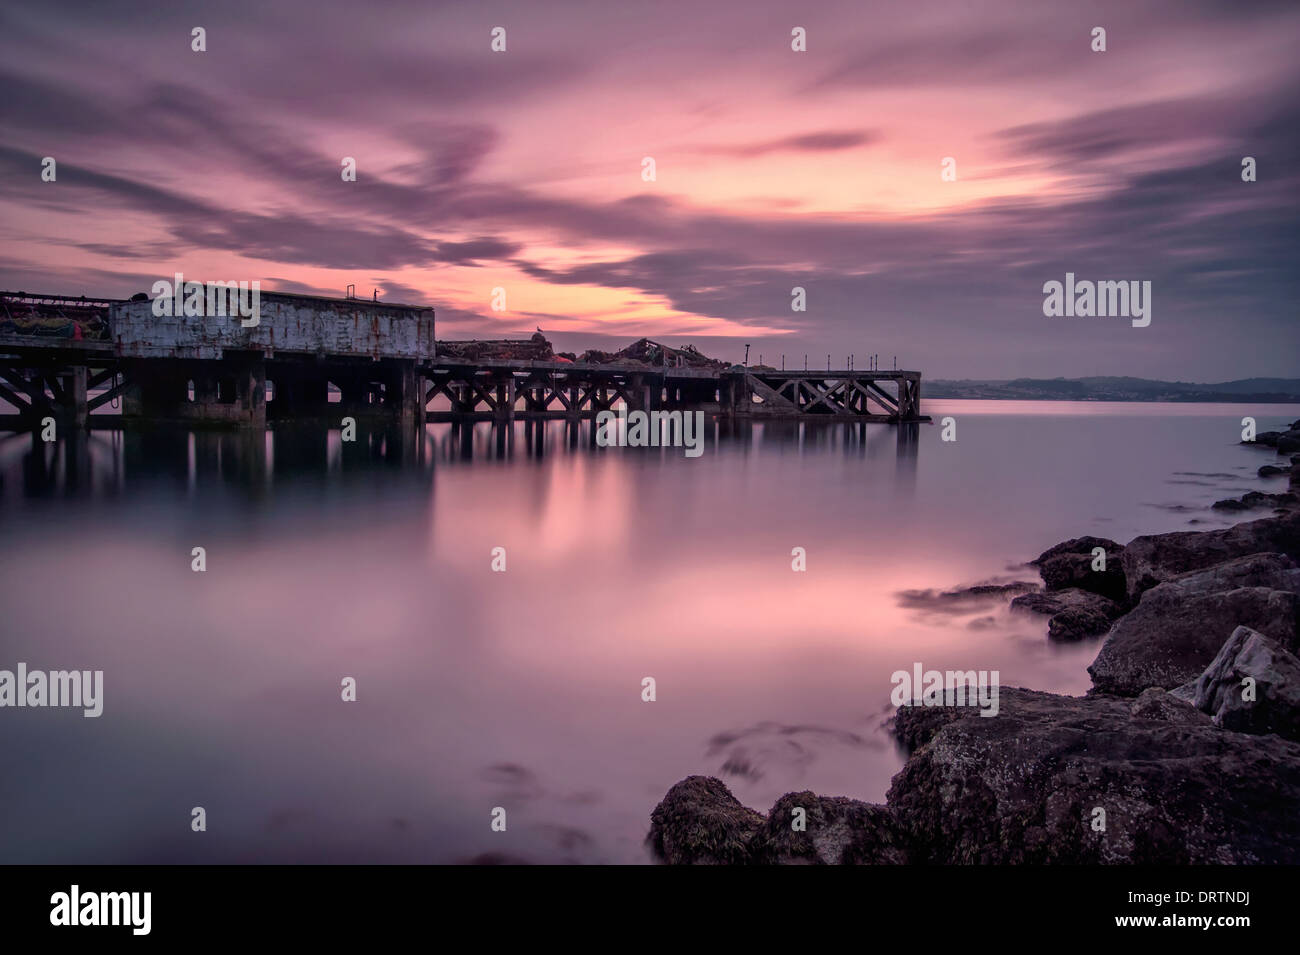 Brixham jetty  / pier in Torbay Devon early evening which joins the breakwater. - Stock Image